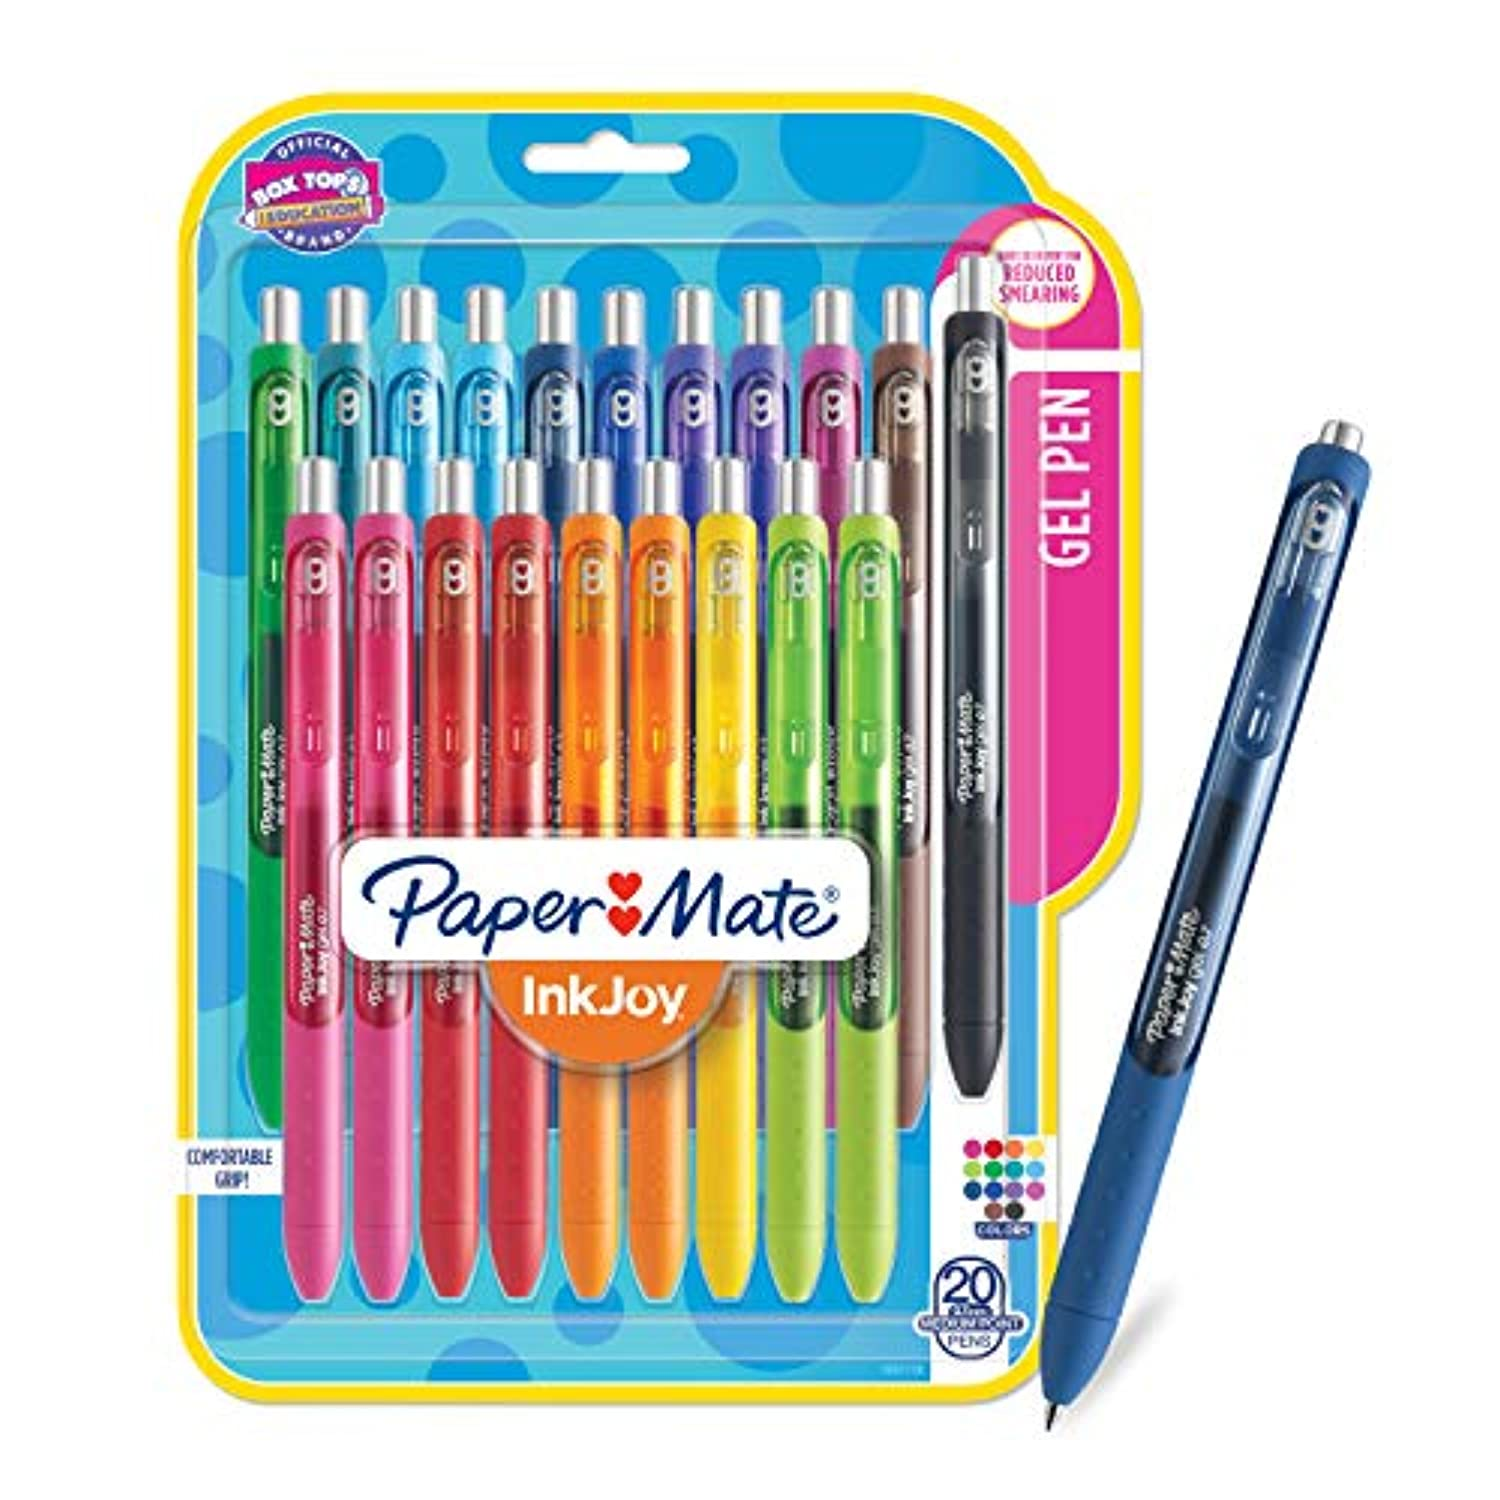 Paper Mate InkJoy Gel Pens, Medium Point, Assorted Colors, 20 Count - 1951718